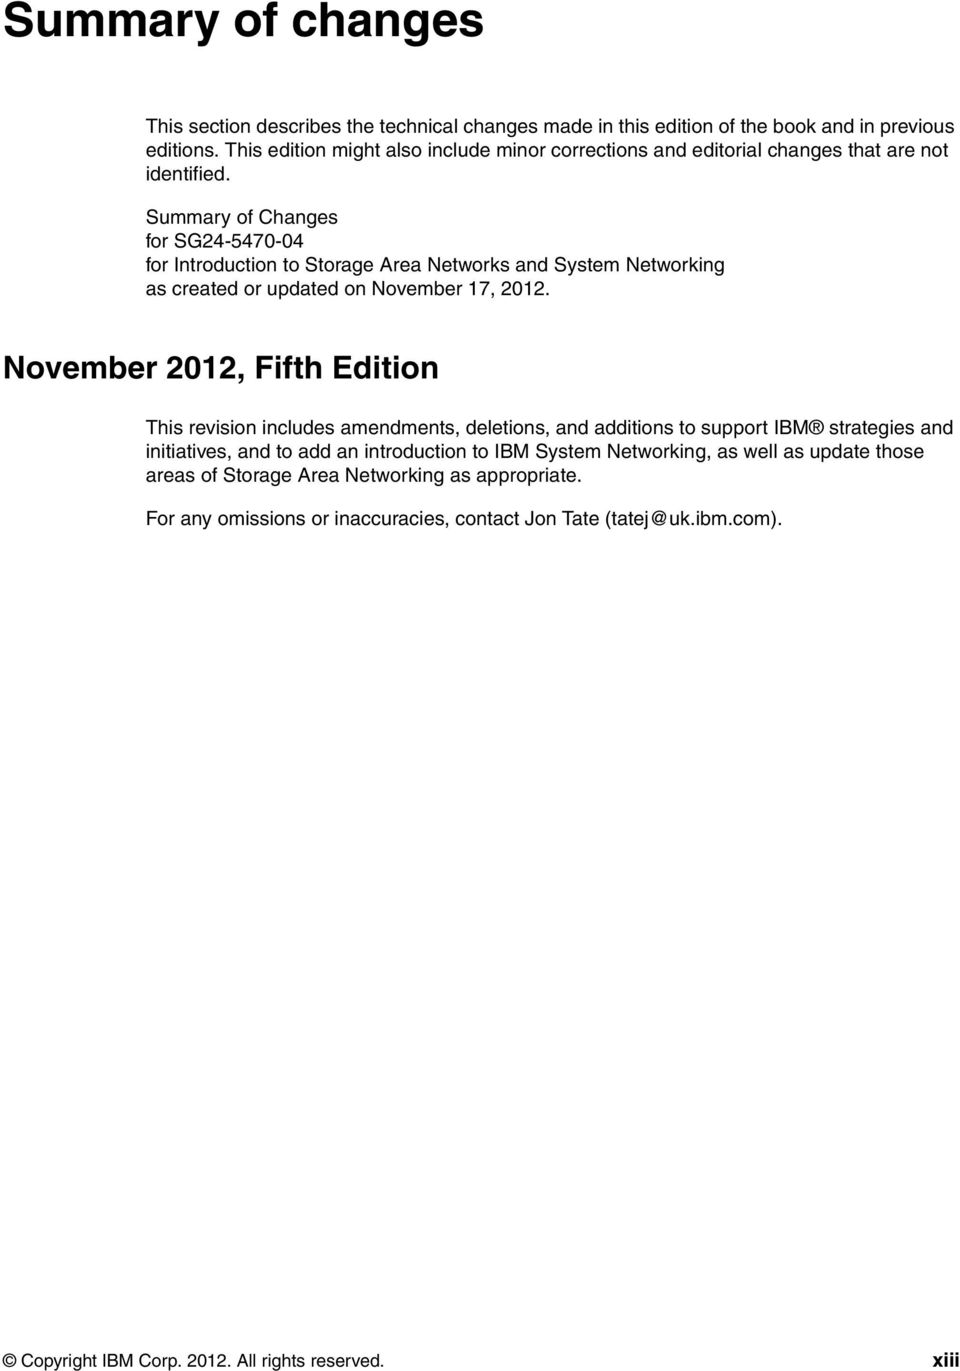 Summary of Changes for SG24-5470-04 for Introduction to Storage Area Networks and System Networking as created or updated on November 17, 2012.